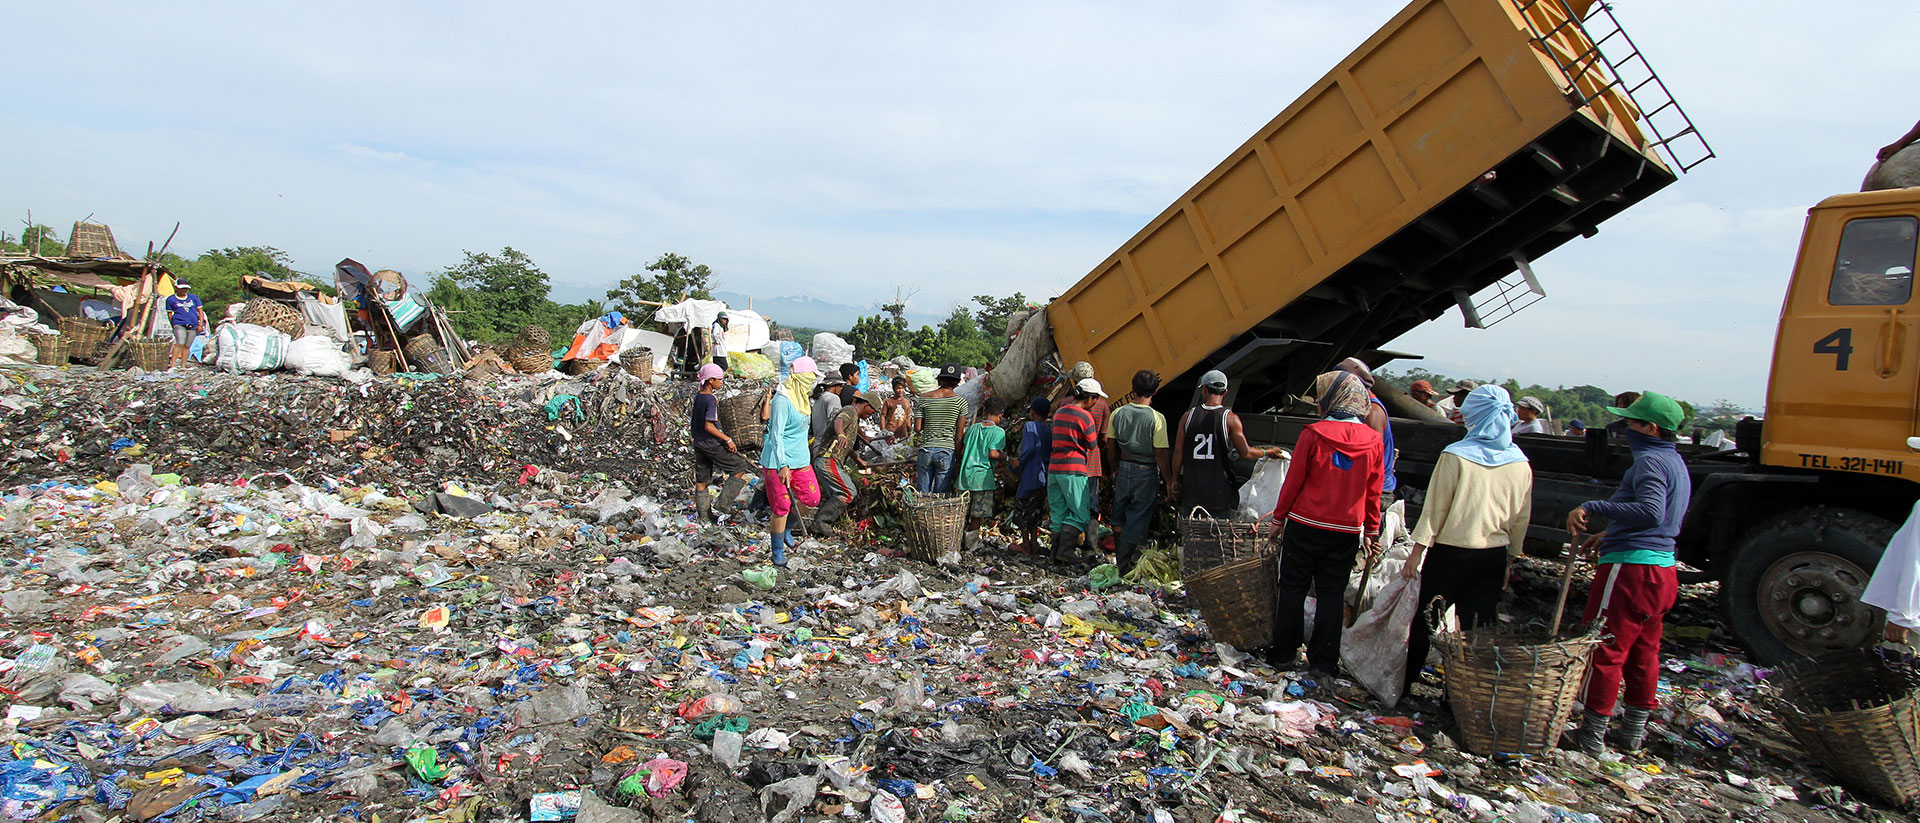 People standing in line waiting for a new load of garbage from the dumptruck